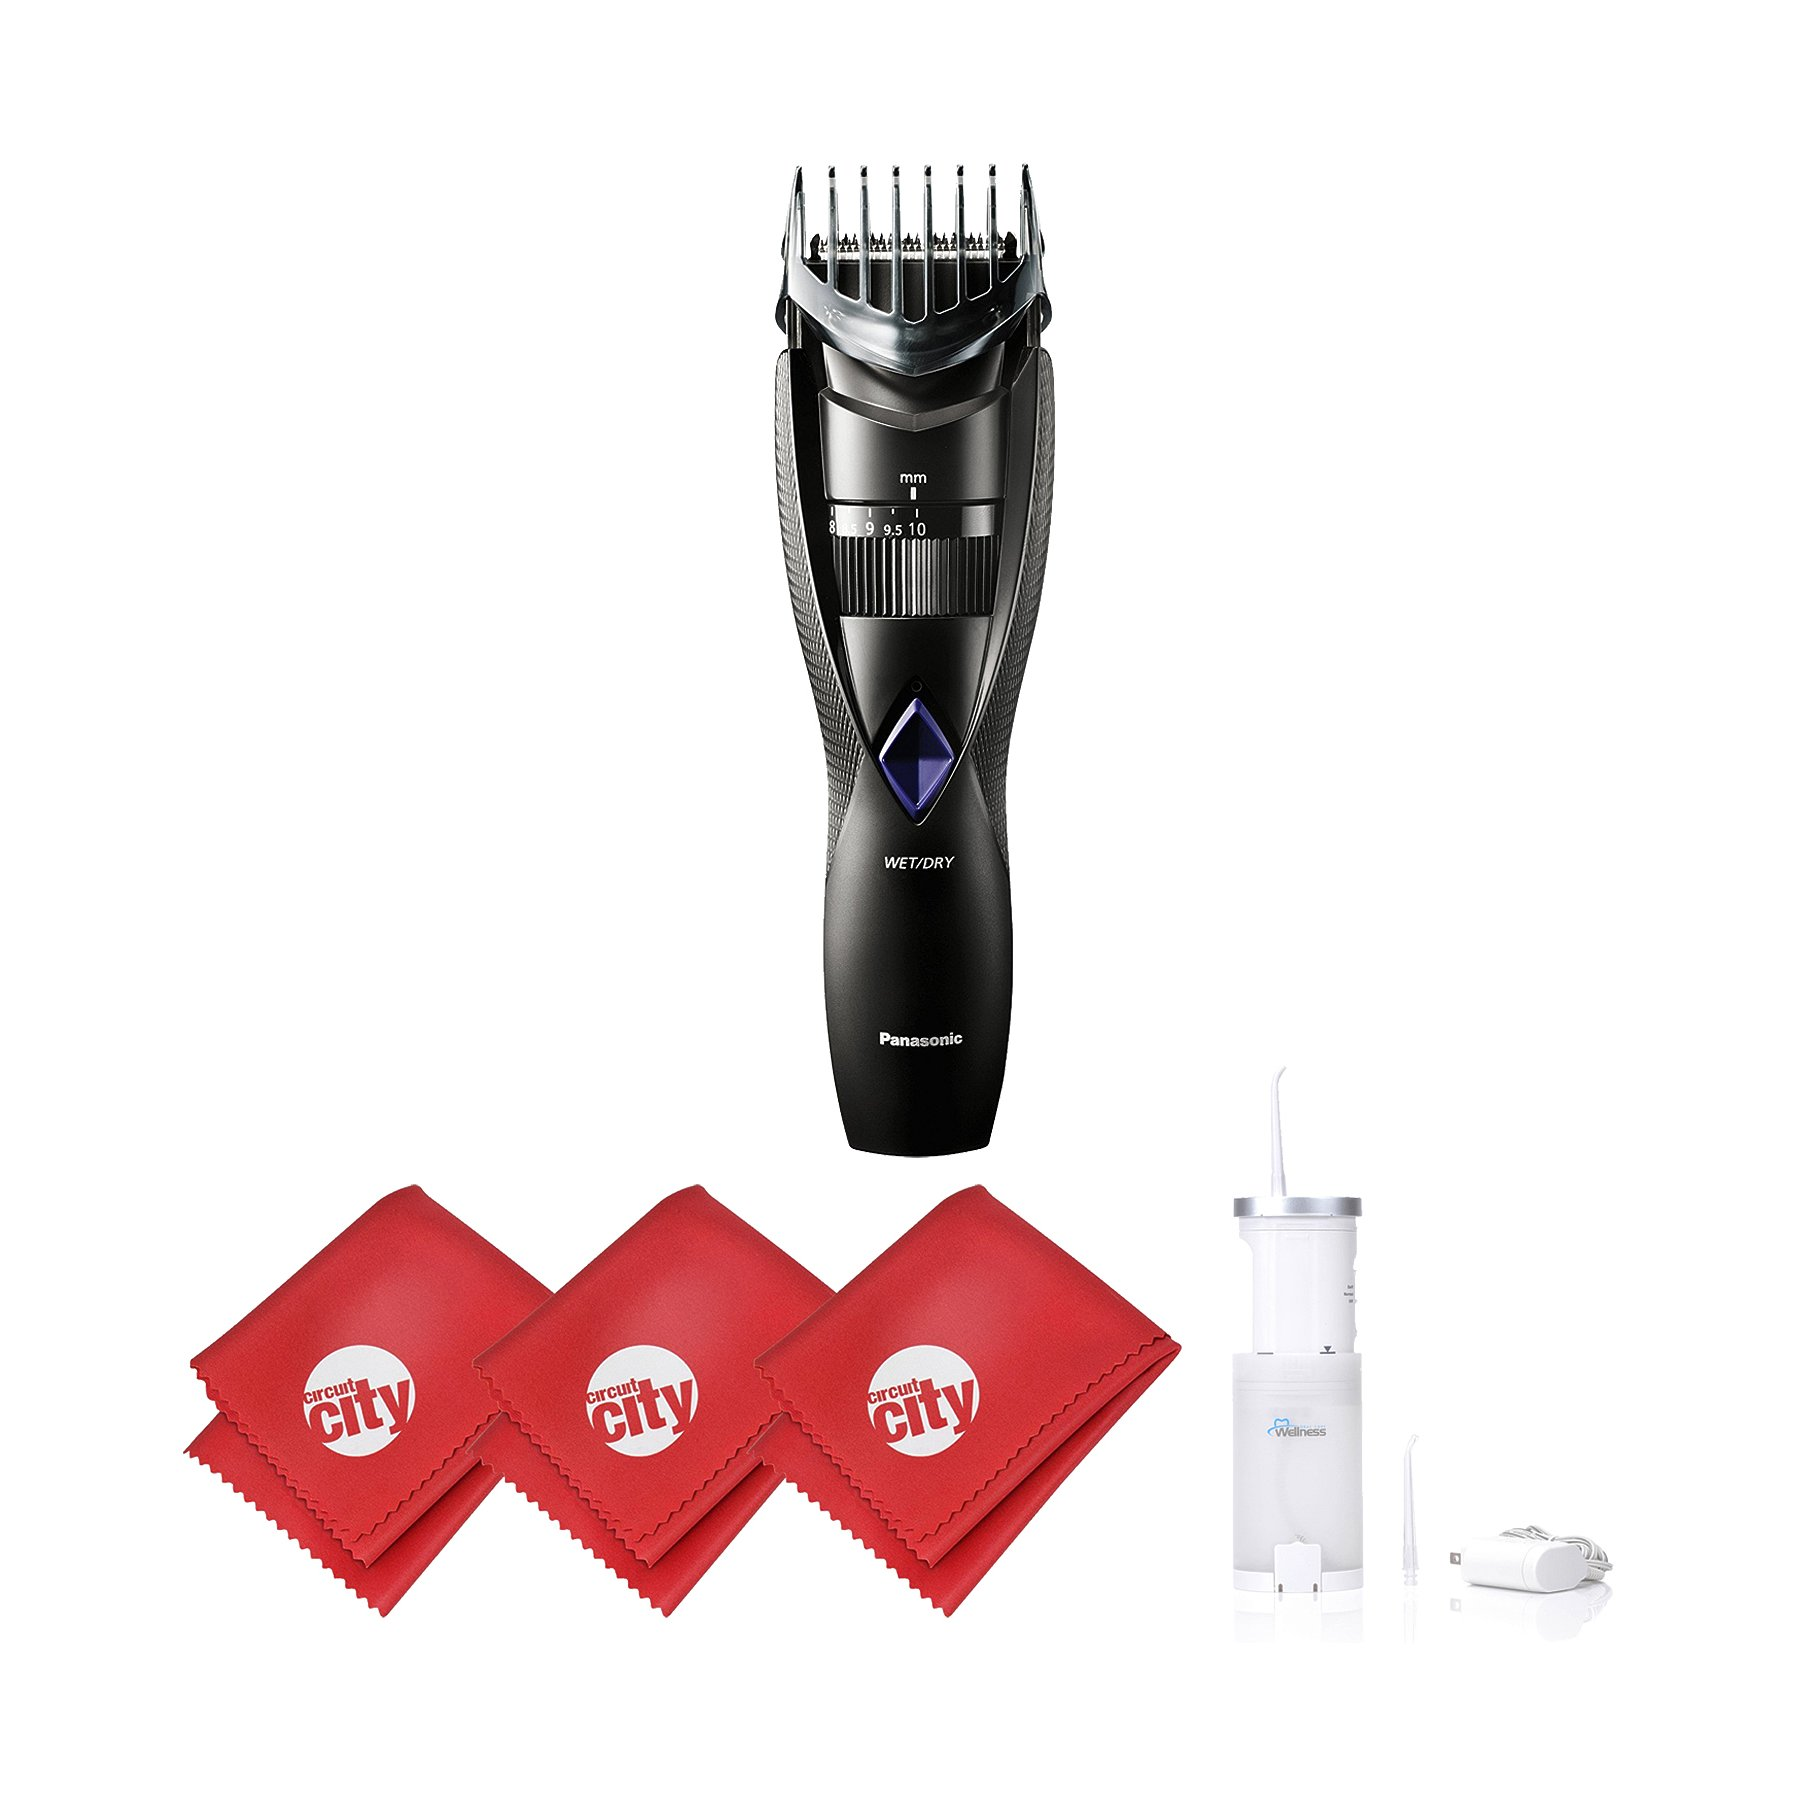 Panasonic Mens Wet/Dry Cordless Beard and Hair Trimmer with Sonic ...